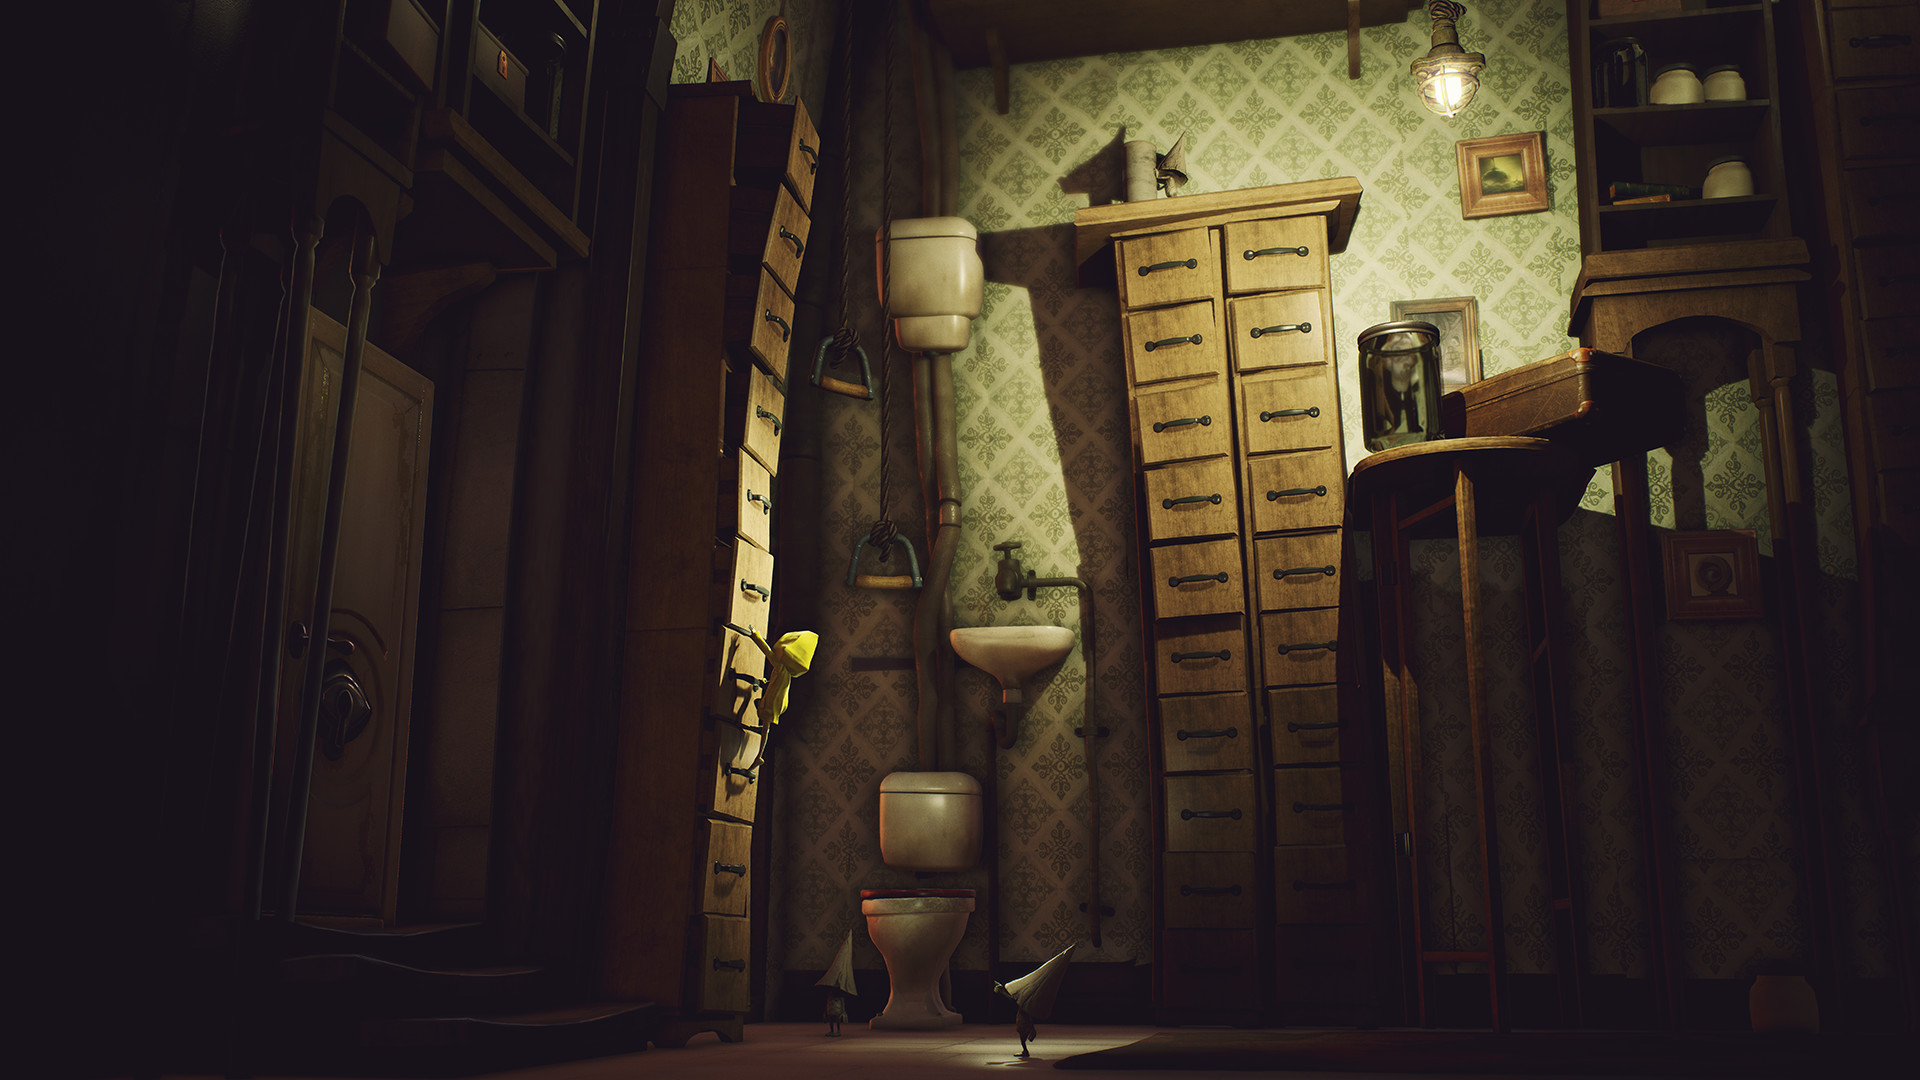 download little nightmares secrets of the maw chapter 1-codex cracked full version singlelink iso rar multi language free for pc